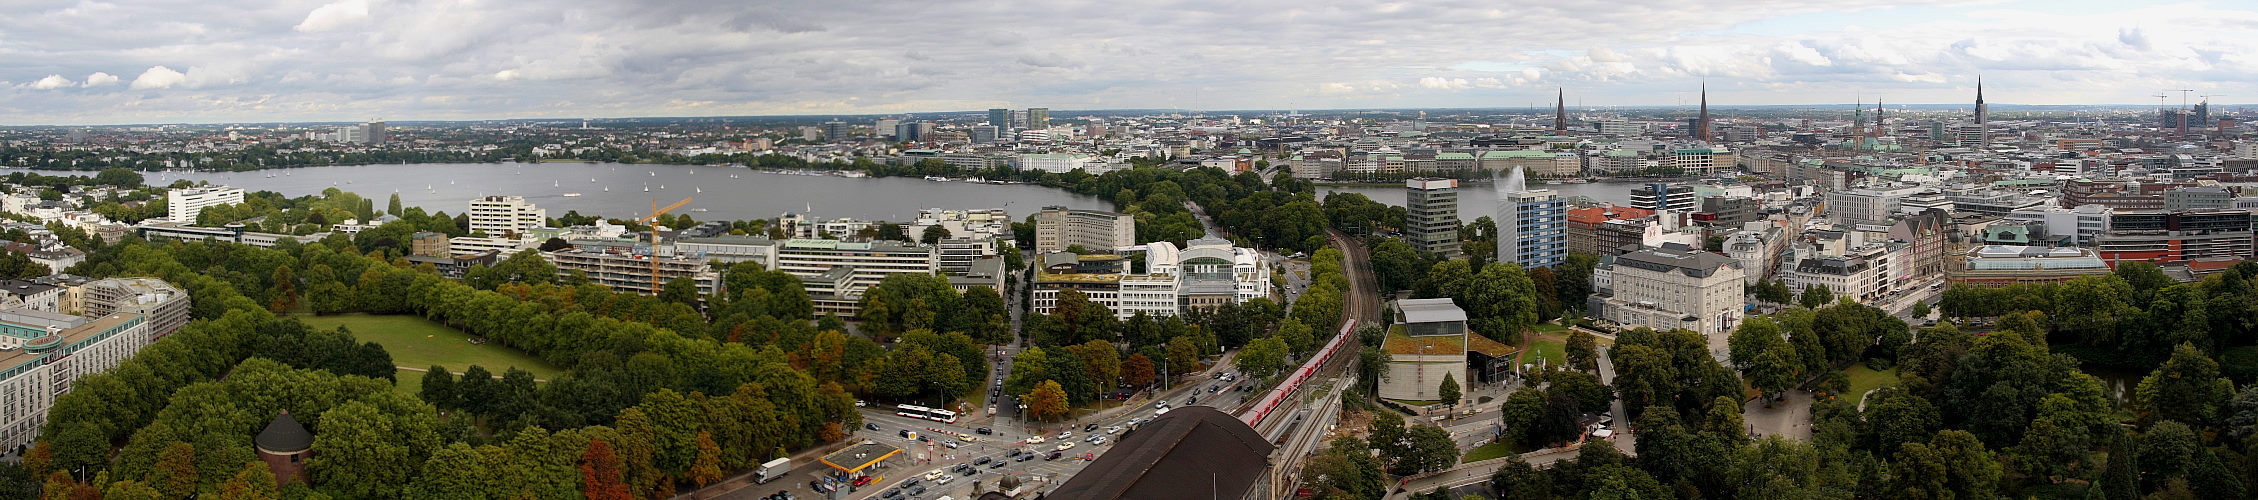 Alster-Panorama